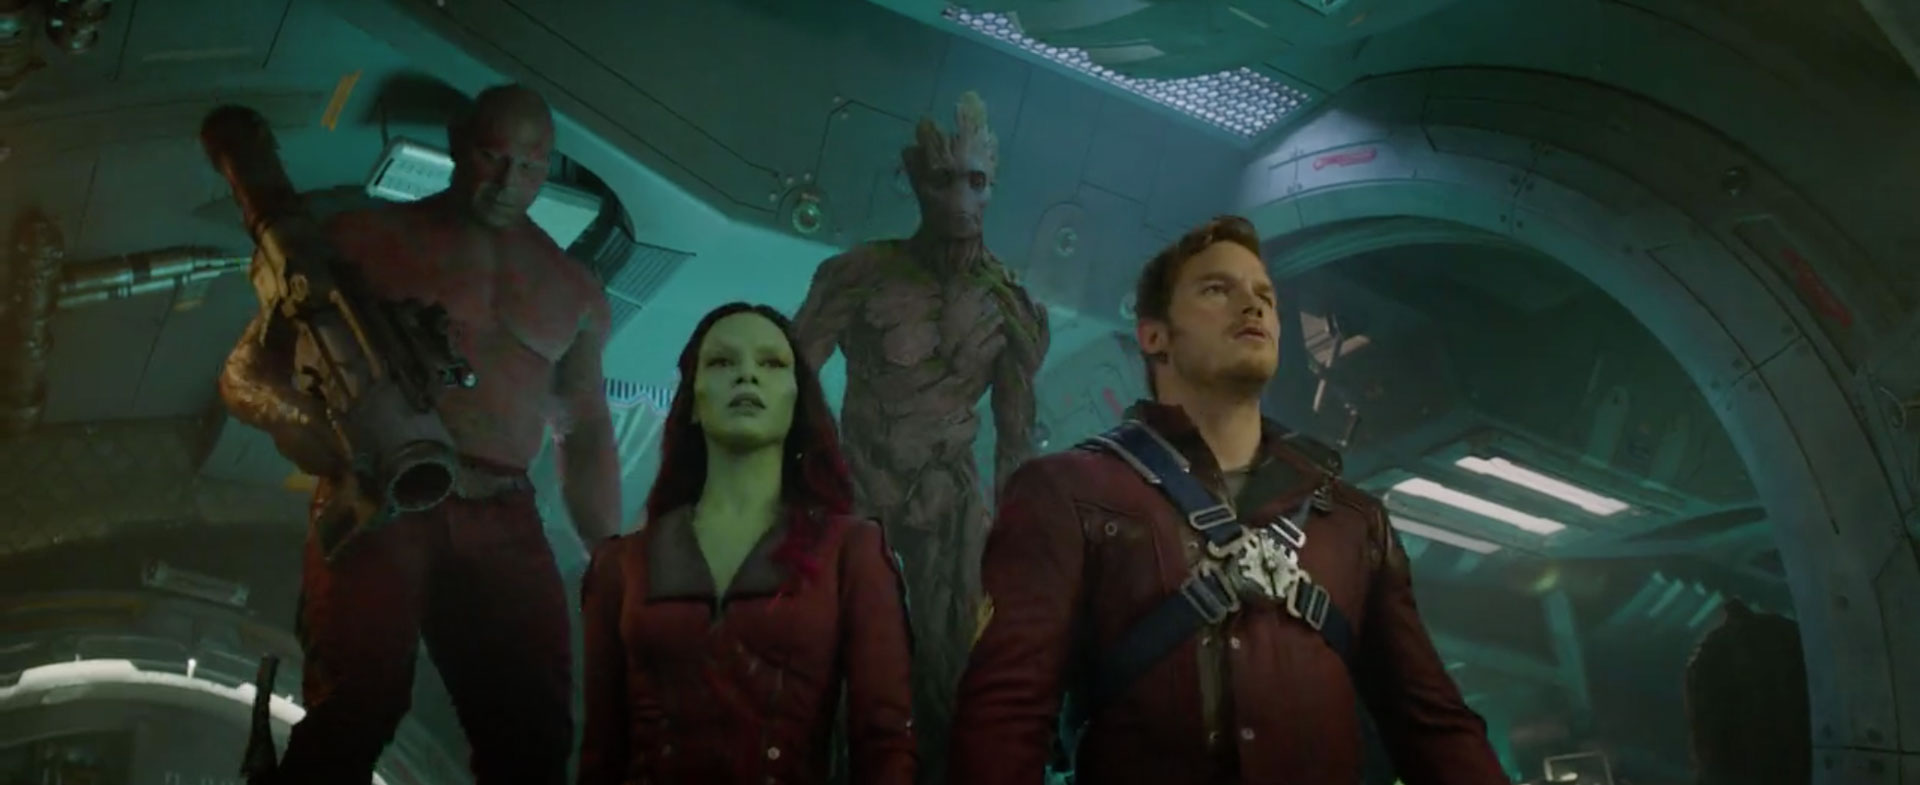 Guardians of the Galaxy Trailer 2 'Oh Yeah' | Scopecube